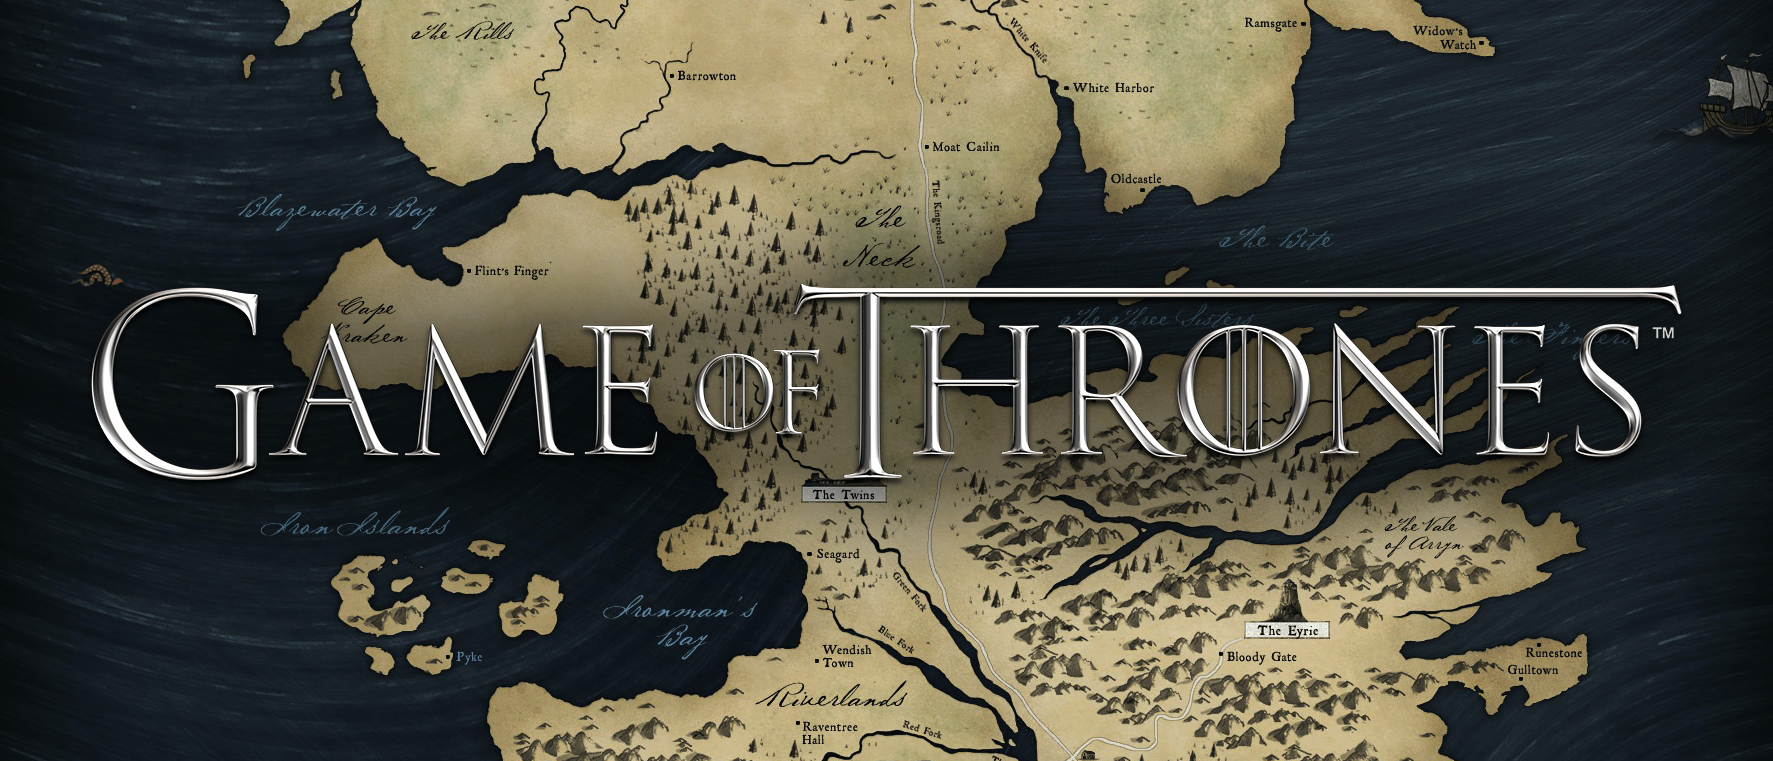 Game-of-Thrones-Map-Emblem